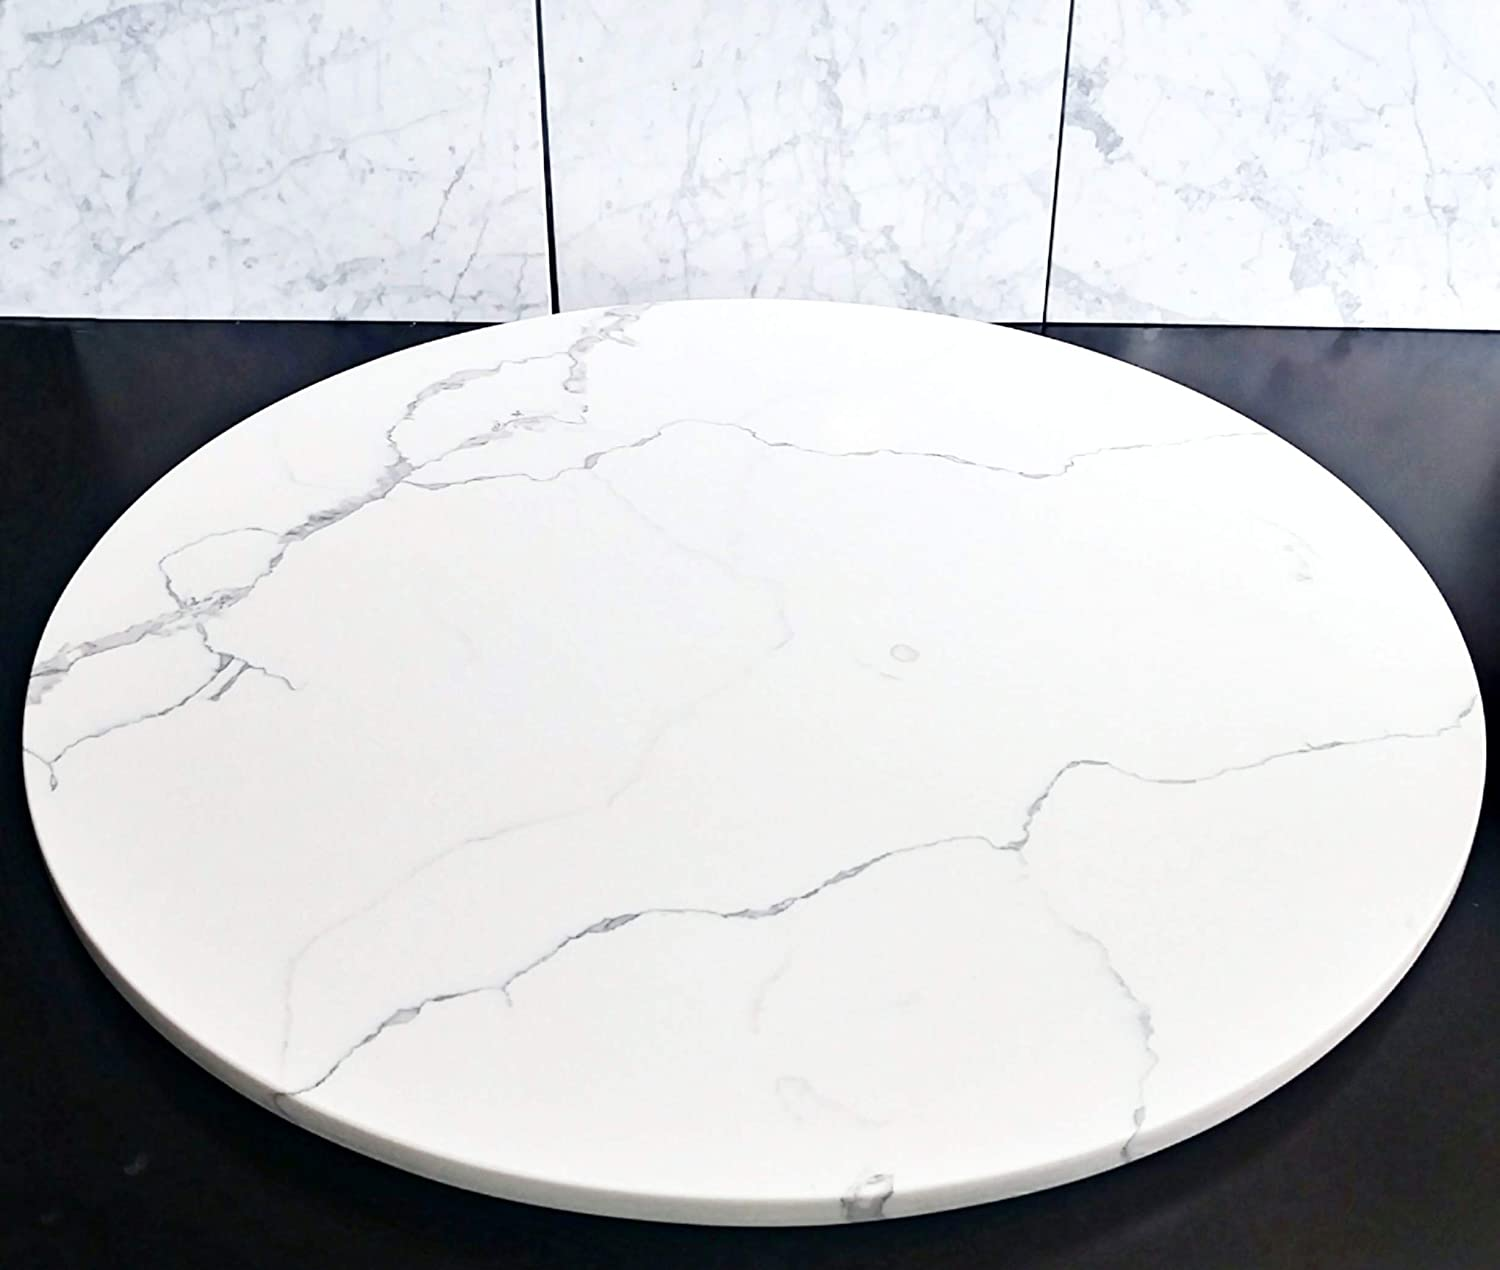 Quartz Marble Lazy Susan Turntable Rotating Tray Dining Table Holiday Centerpiece Large 36 Inch Handmade